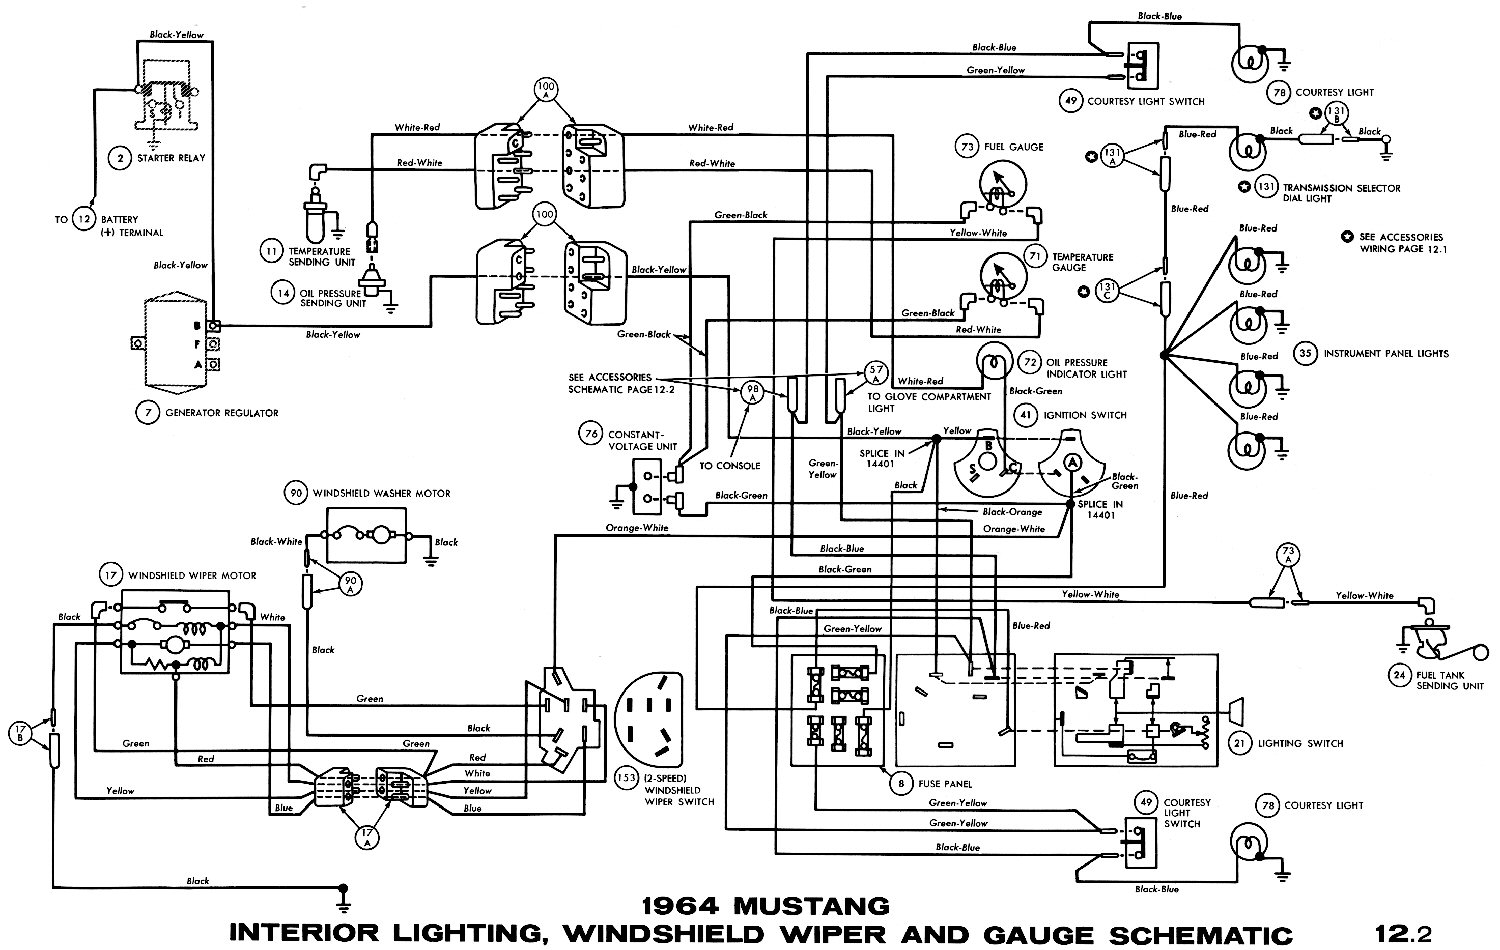 Radio Wiring Diagram 1968 Falcon on 1960 Ford Falcon Wiring Diagram